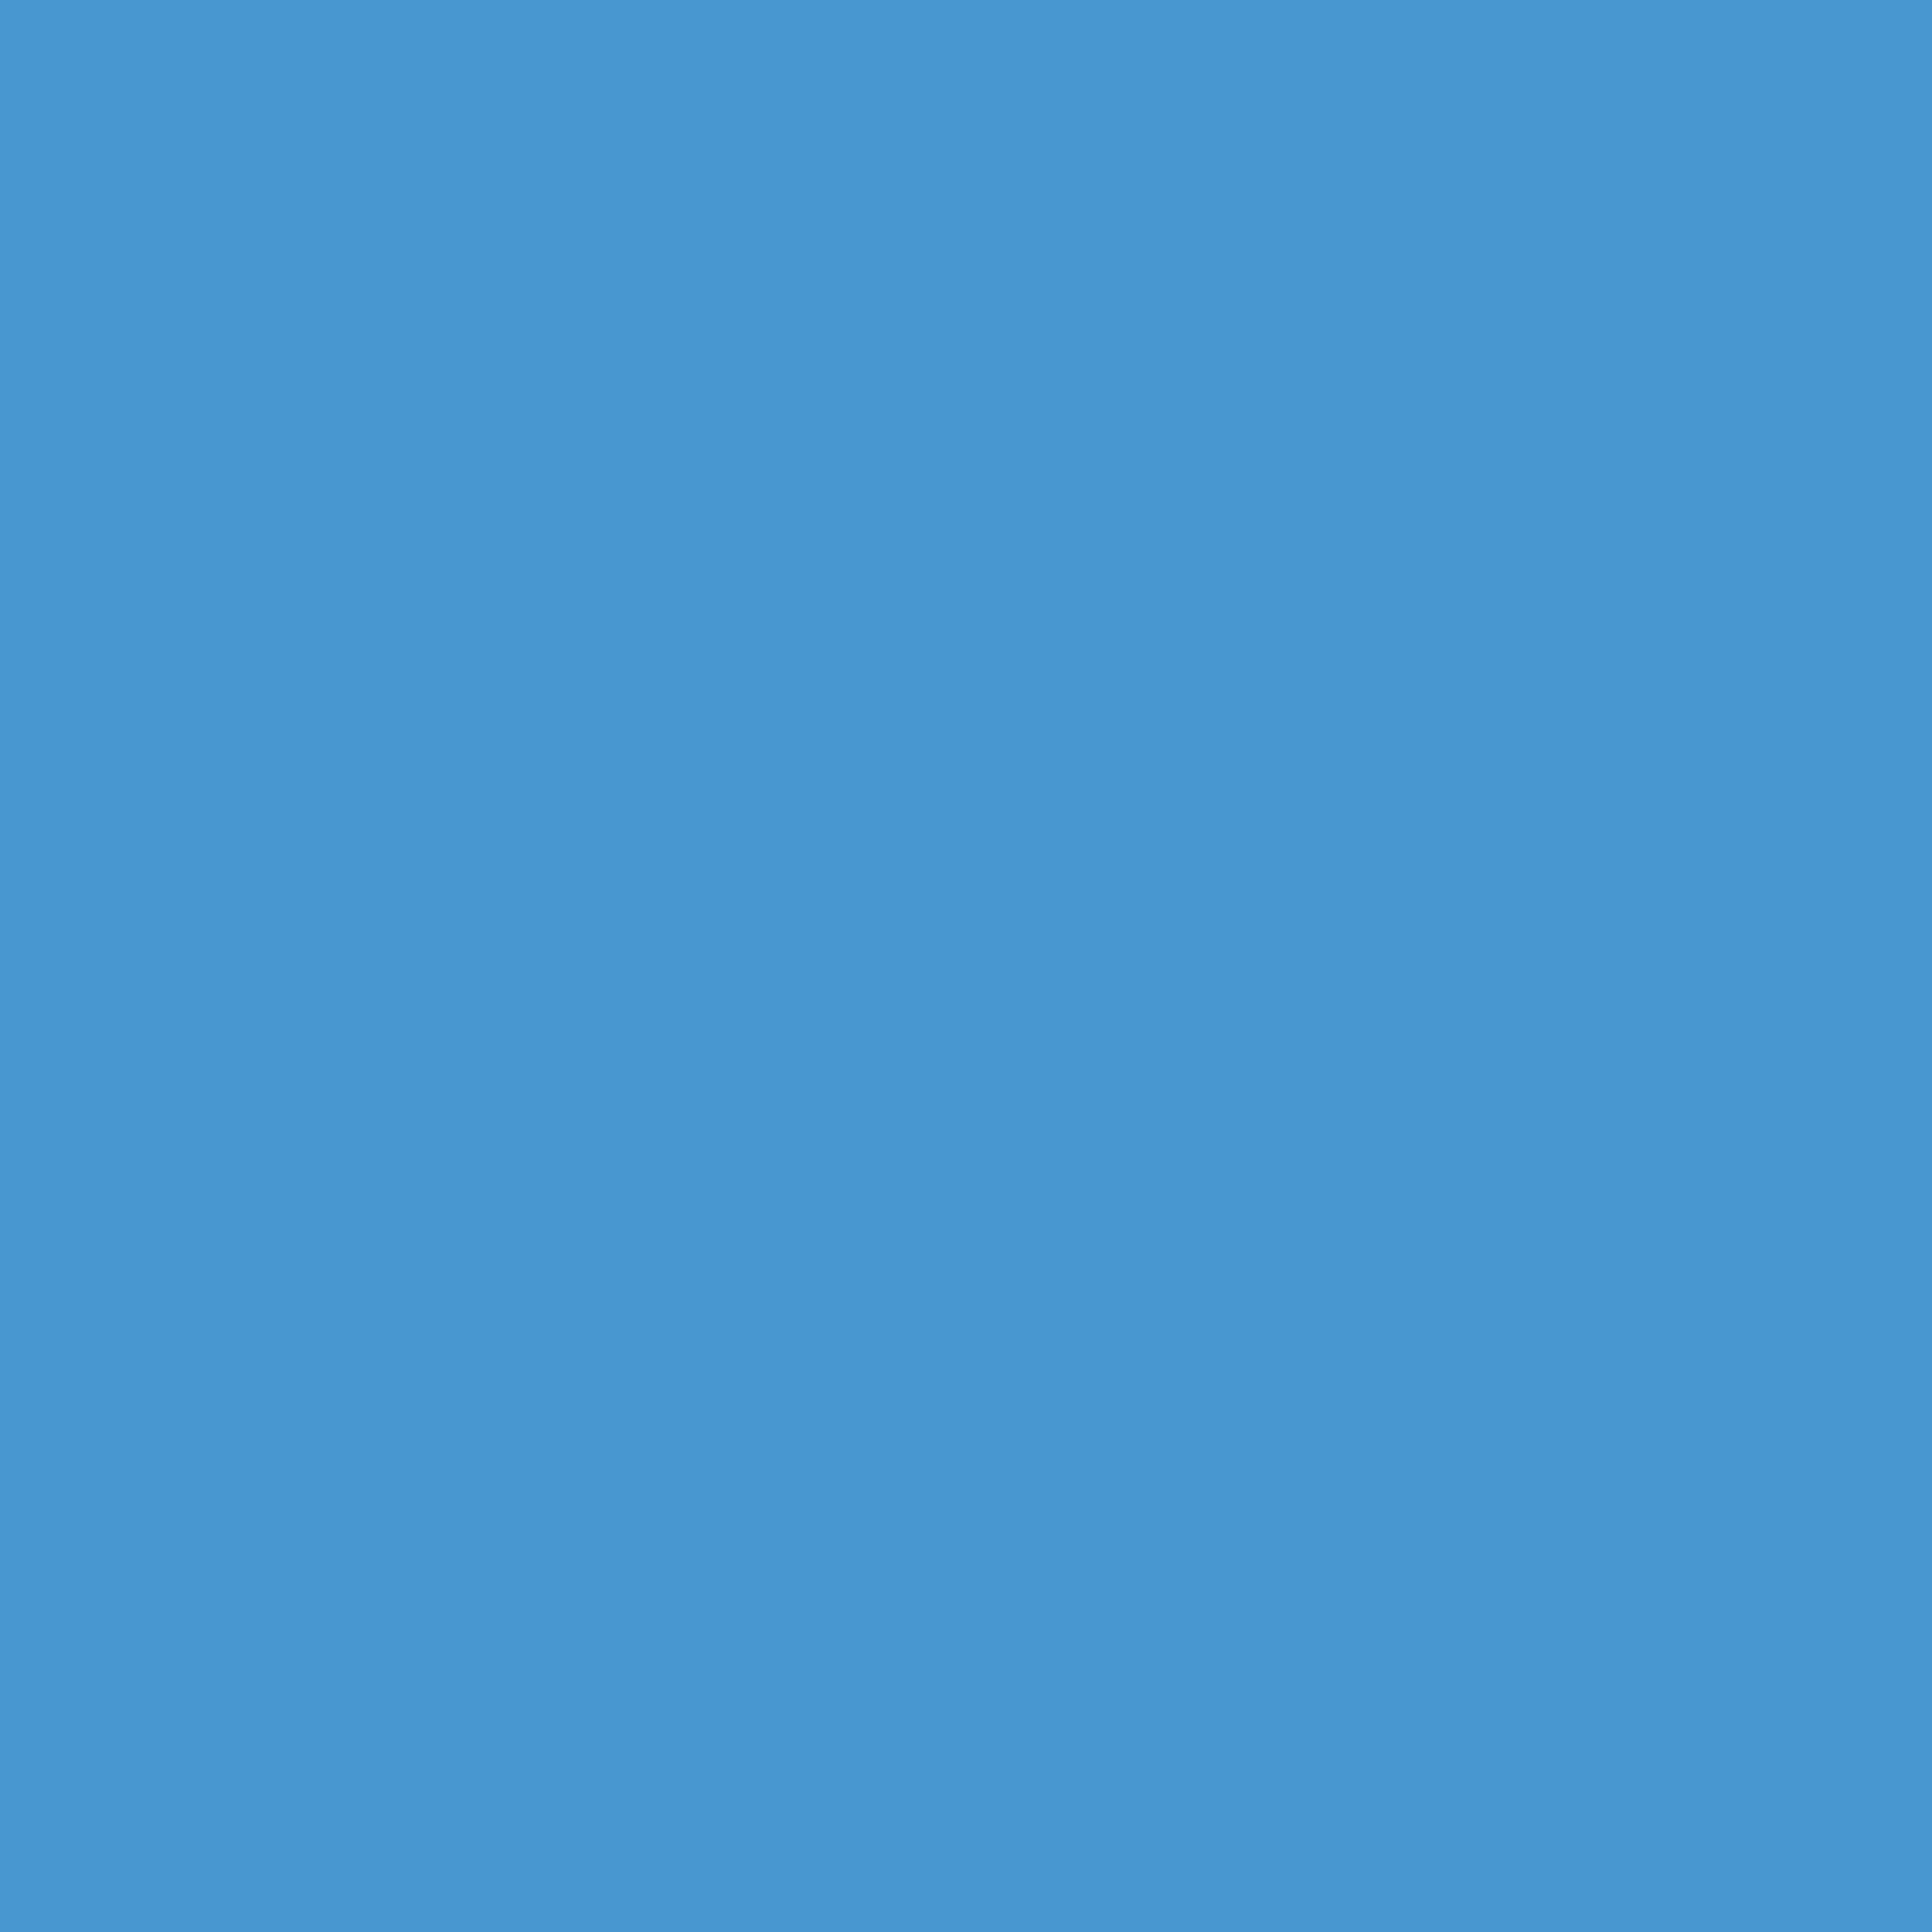 2048x2048 Celestial Blue Solid Color Background